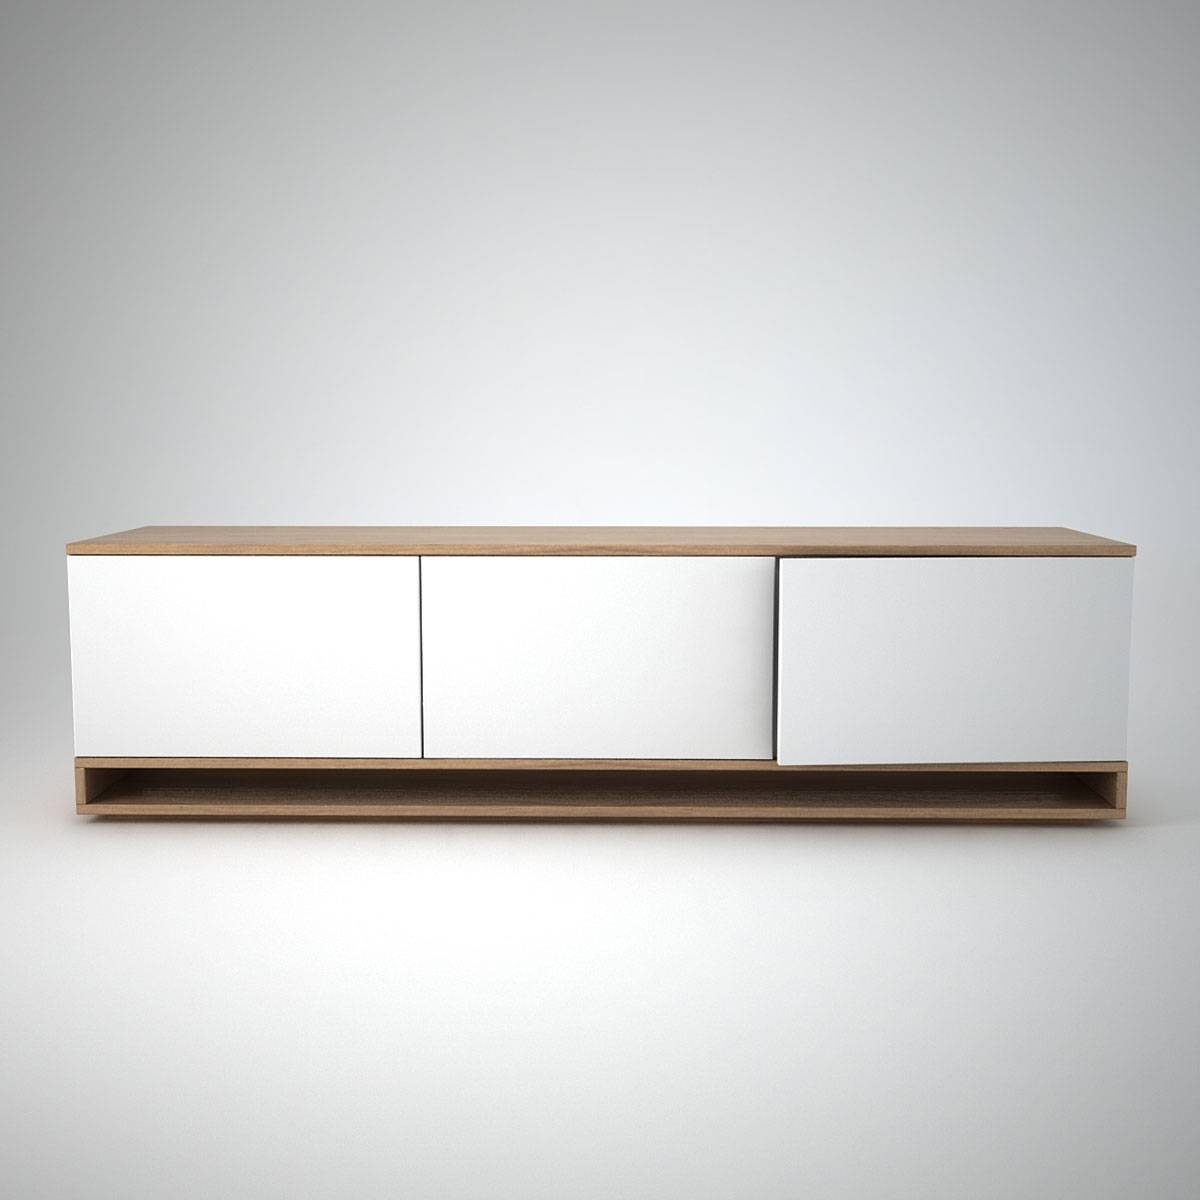 Harlem Low Sideboard (3) White - Join Furniture intended for Small Low Sideboards (Image 9 of 15)